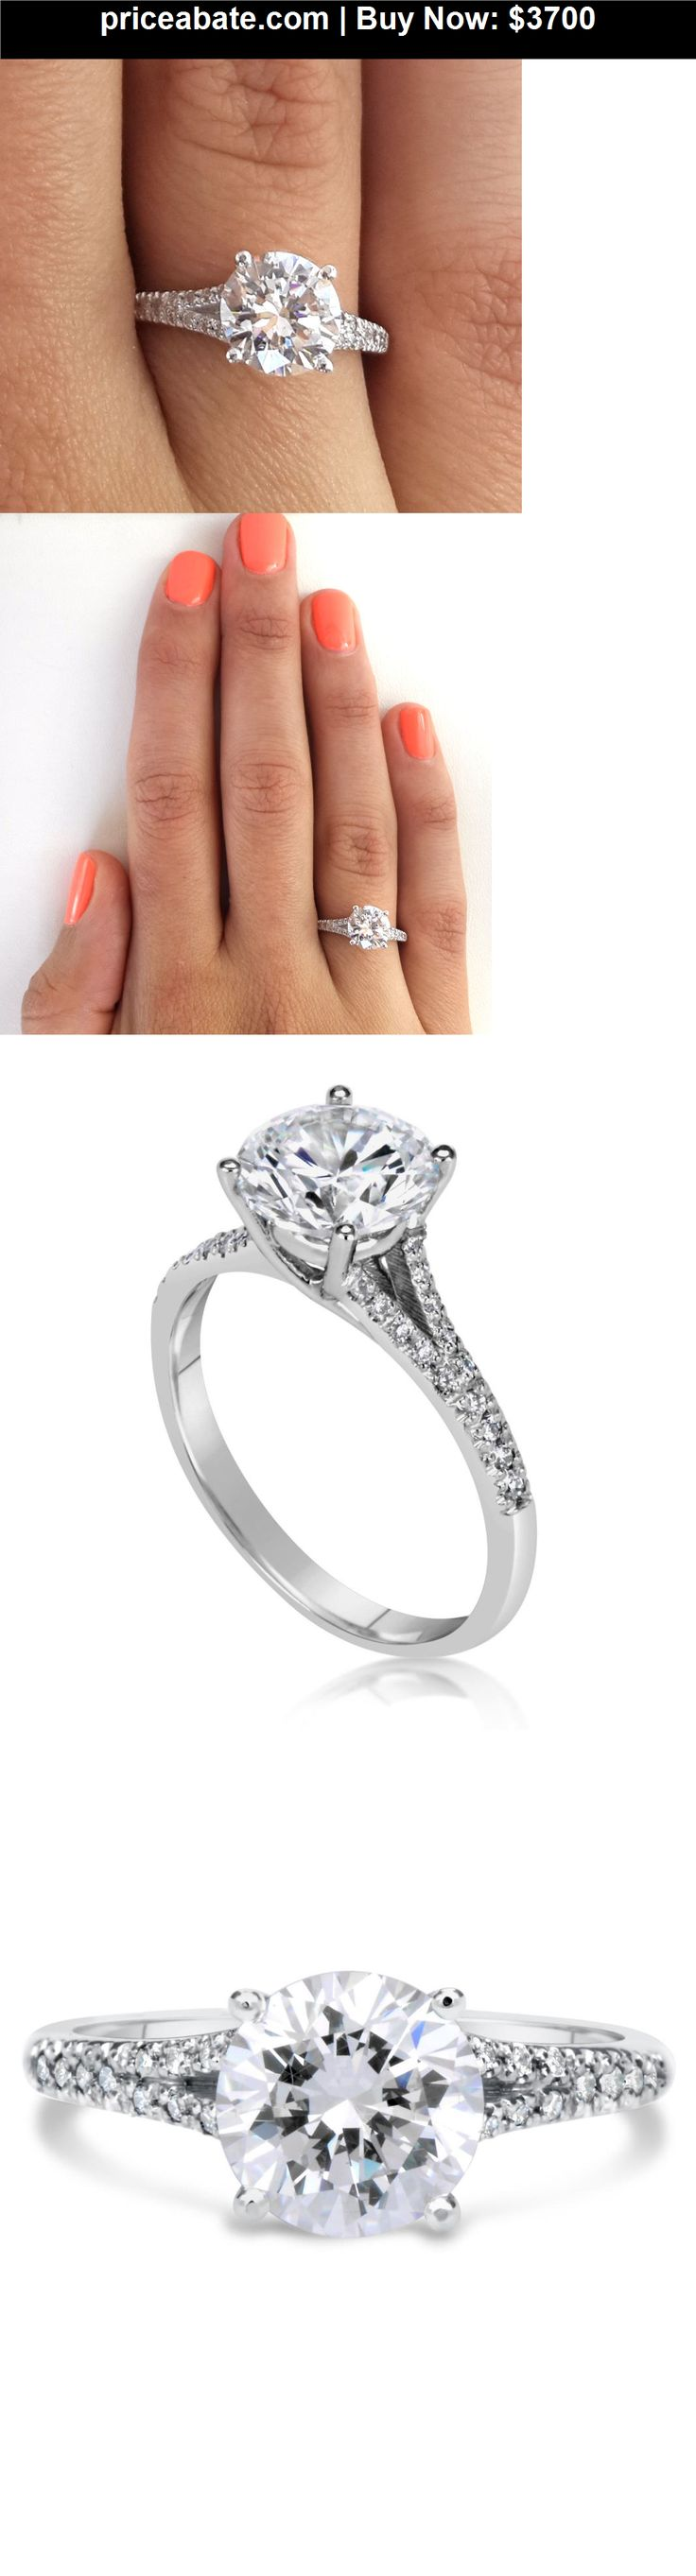 Find This Pin And More On Solitaire Engagement Rings